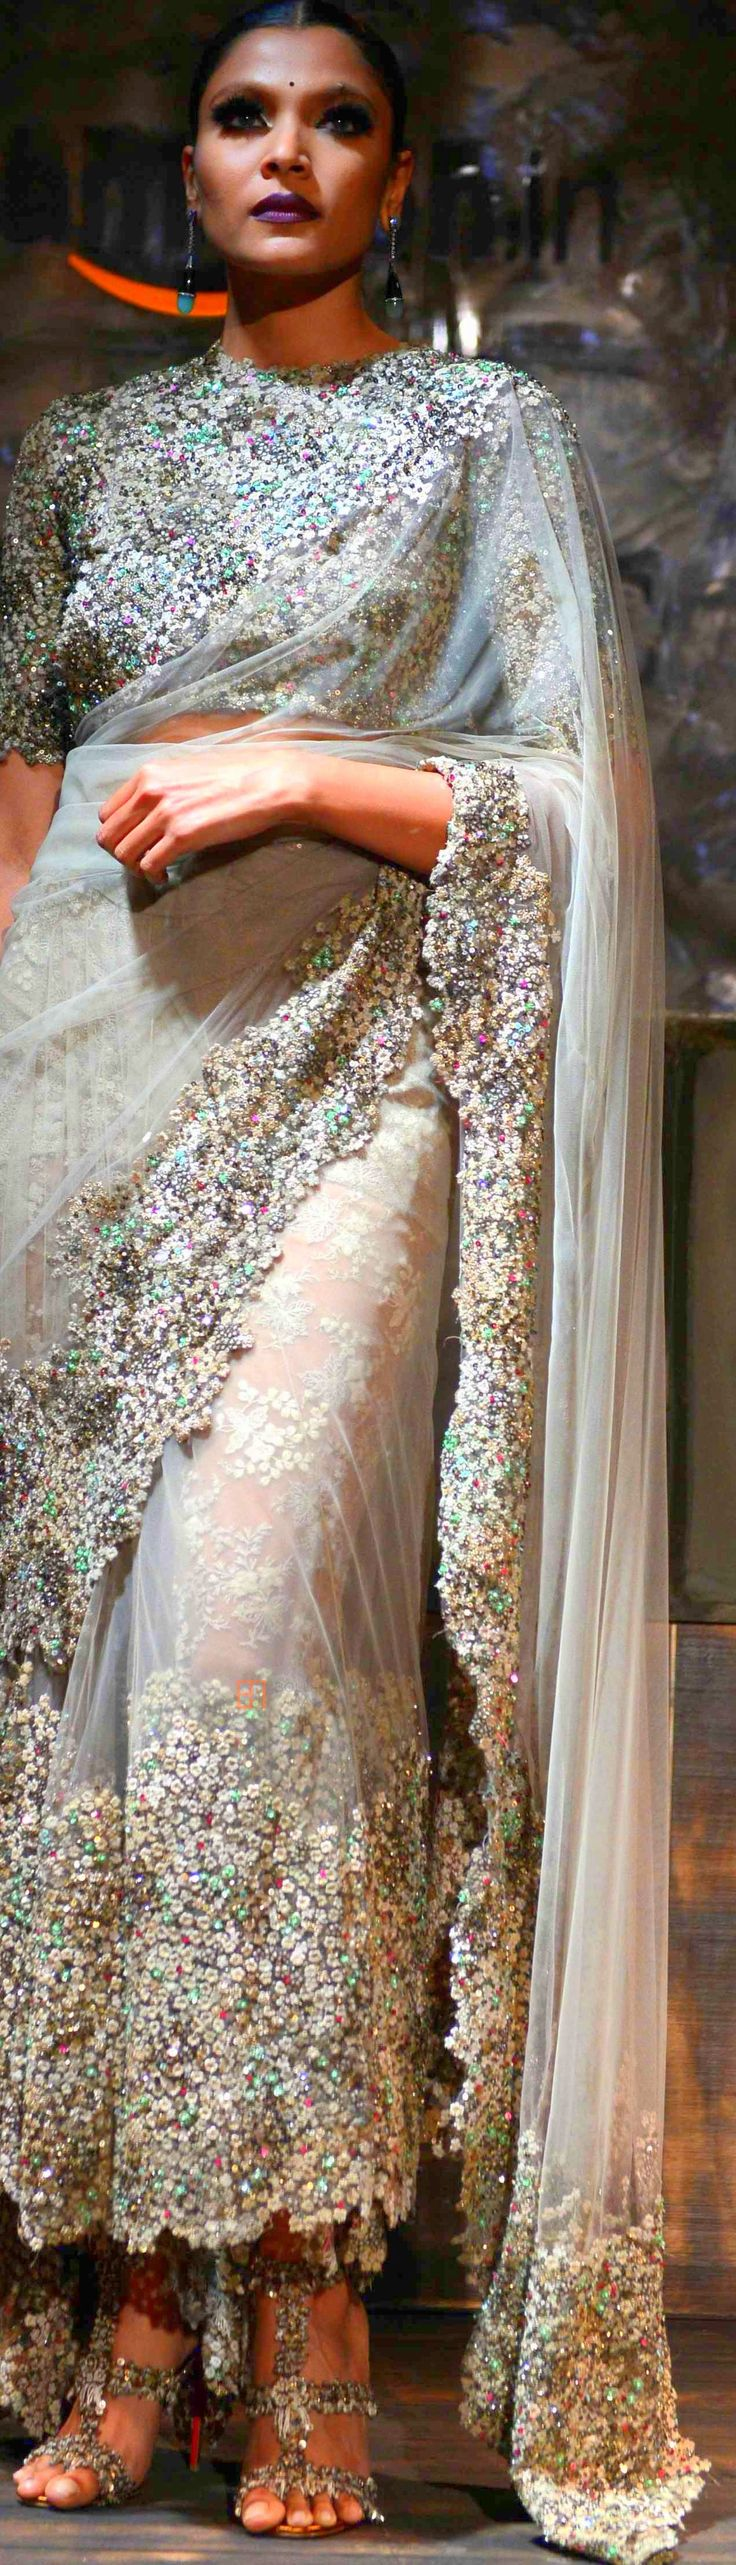 Sabyasachi Mukherjee at Amazon INDIA Couture Week 2015 ♕♚εїз | BLAIR SPARKLES |